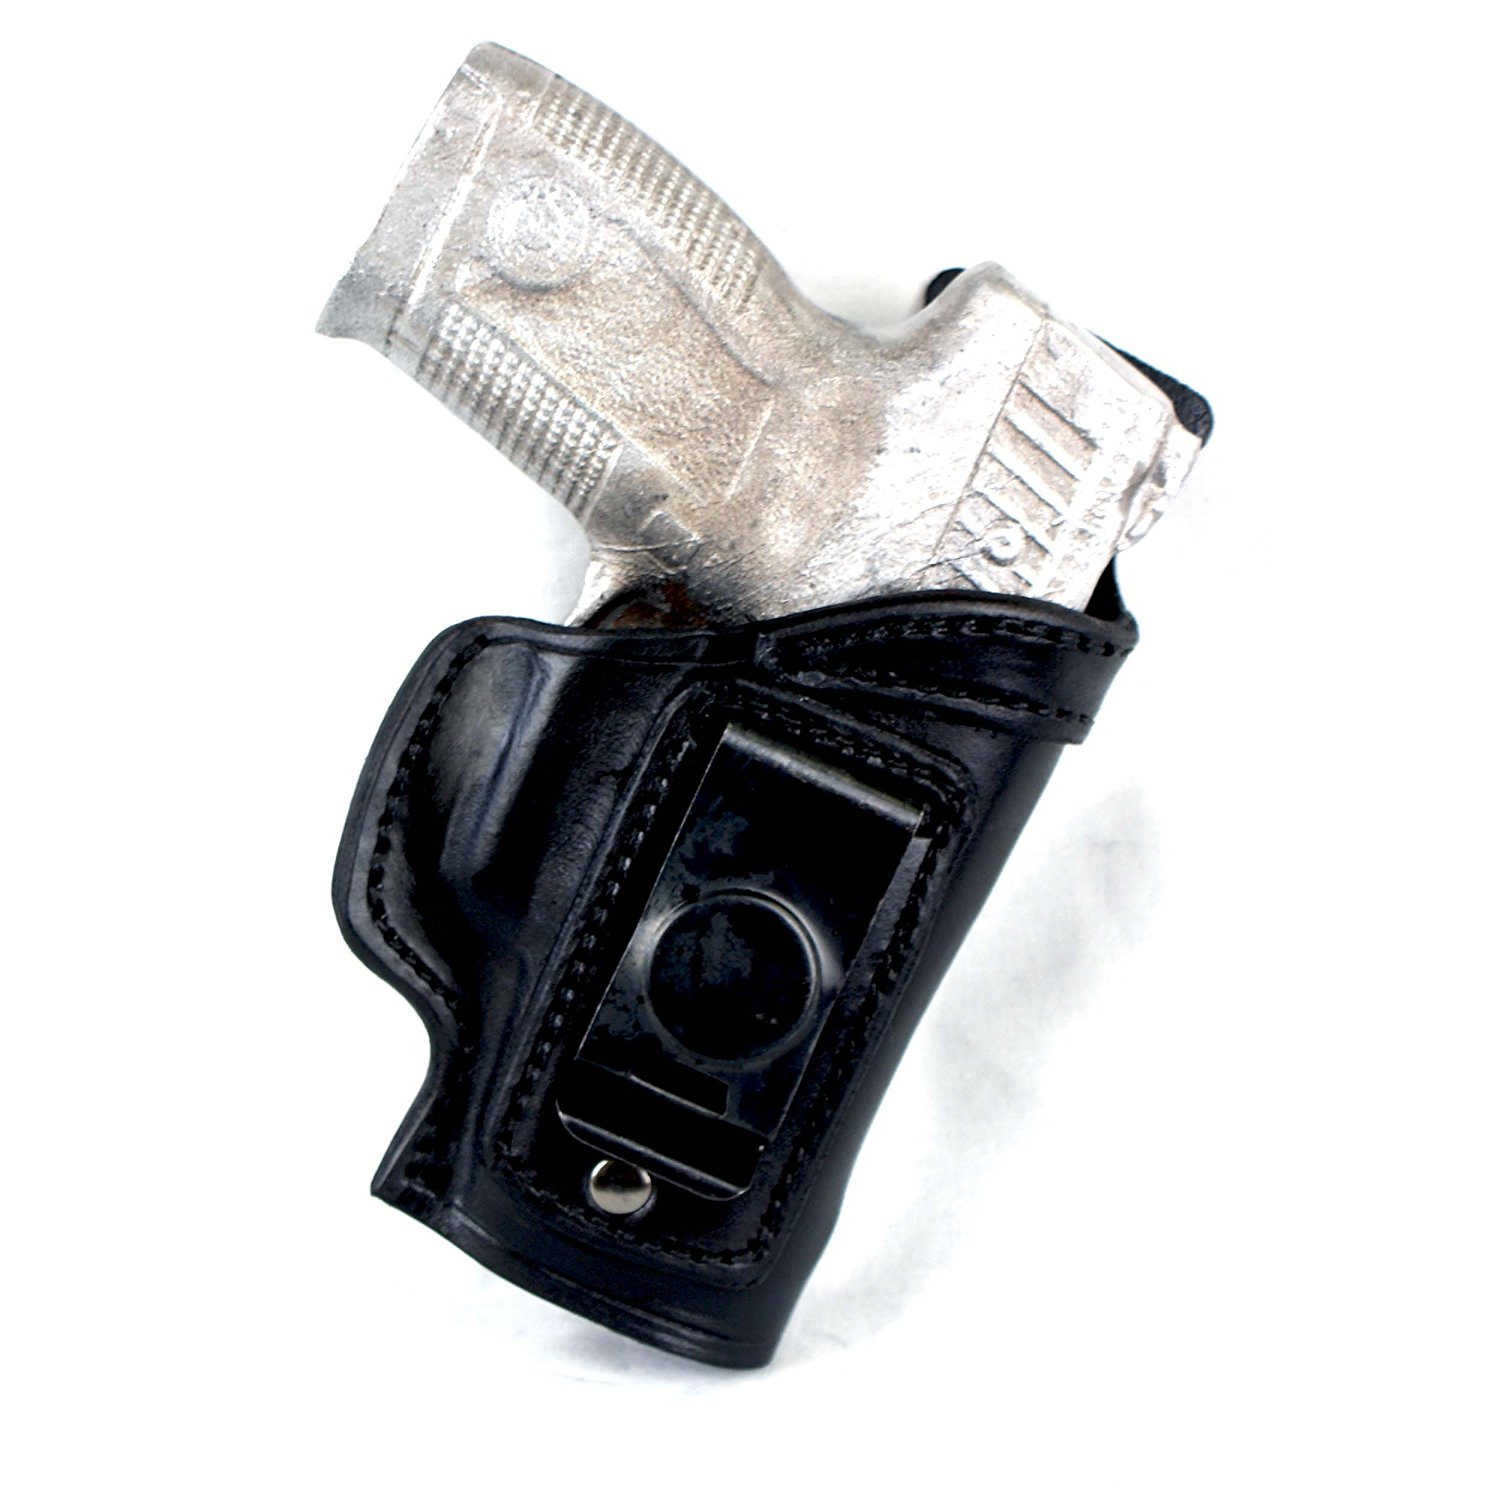 Glock 19 IWB CCW Single Spring Clip Leather Holster with Body Shield R/H Black - 0317